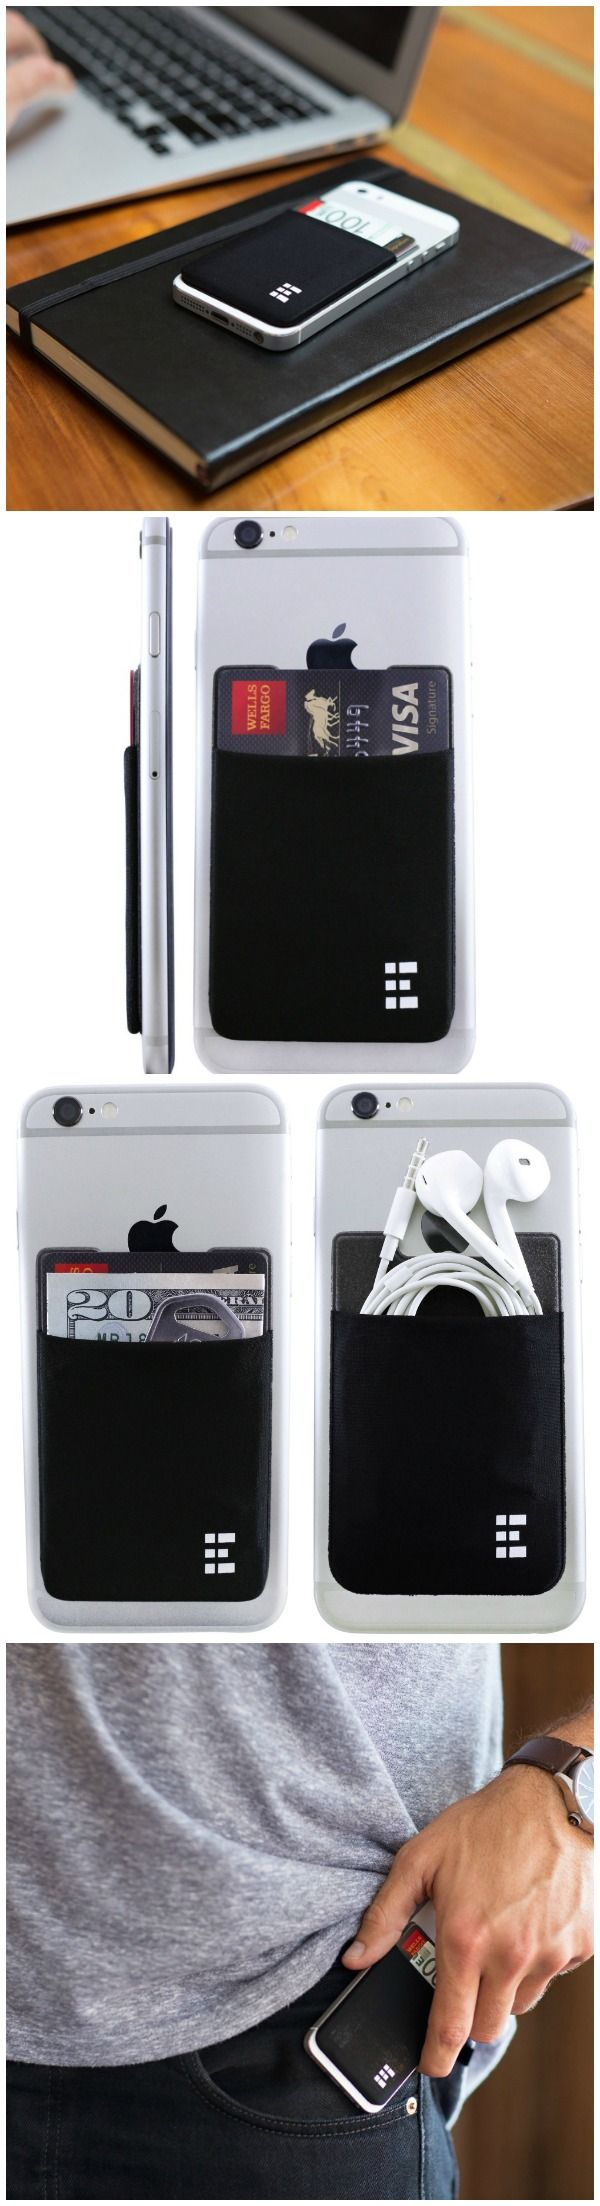 The Zero Grid Cell Phone Wallet securely stores cards, cash, I.D. and other accessories. Works as a RFID wallet case, cell phone pouch, or card holder.